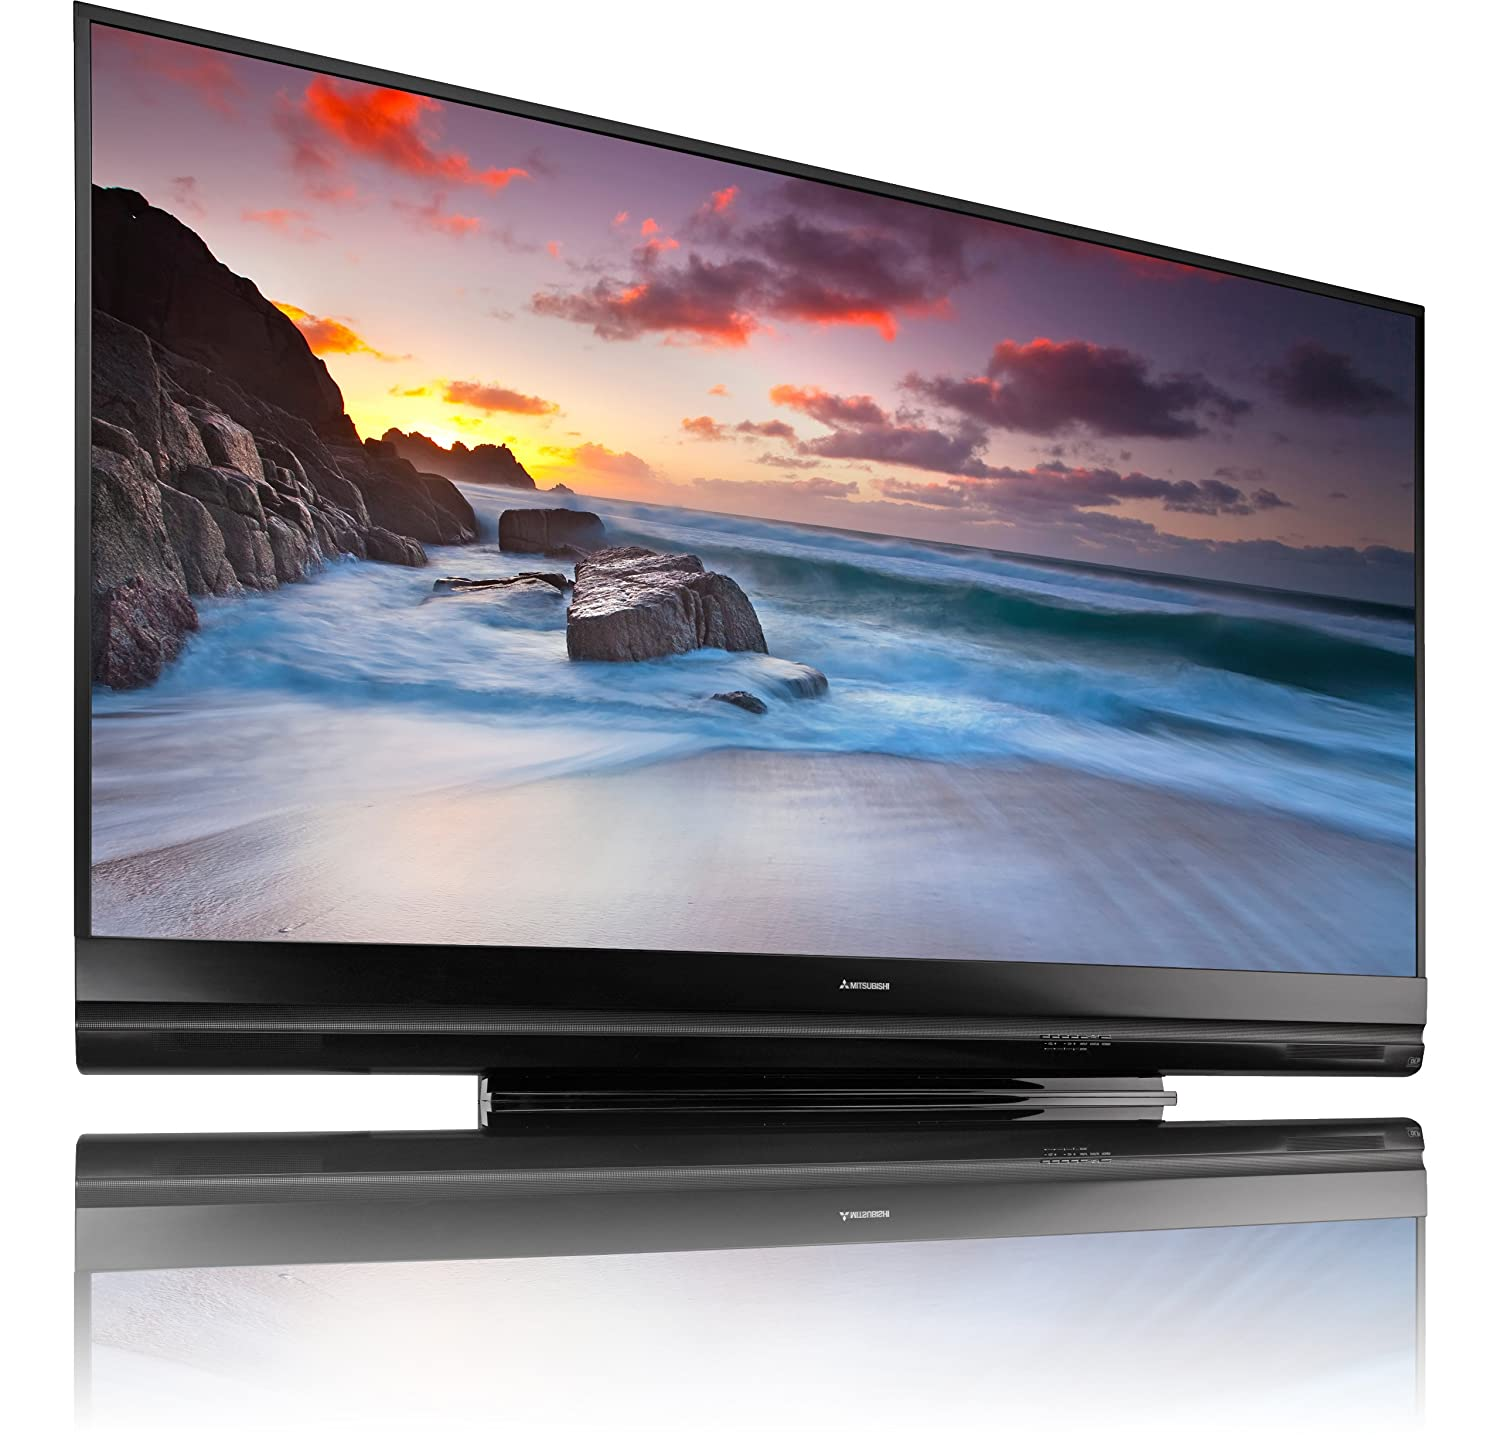 Mitsubishi WD-82740 82-Inch 1080p Projection TV (2011 Model): Amazon